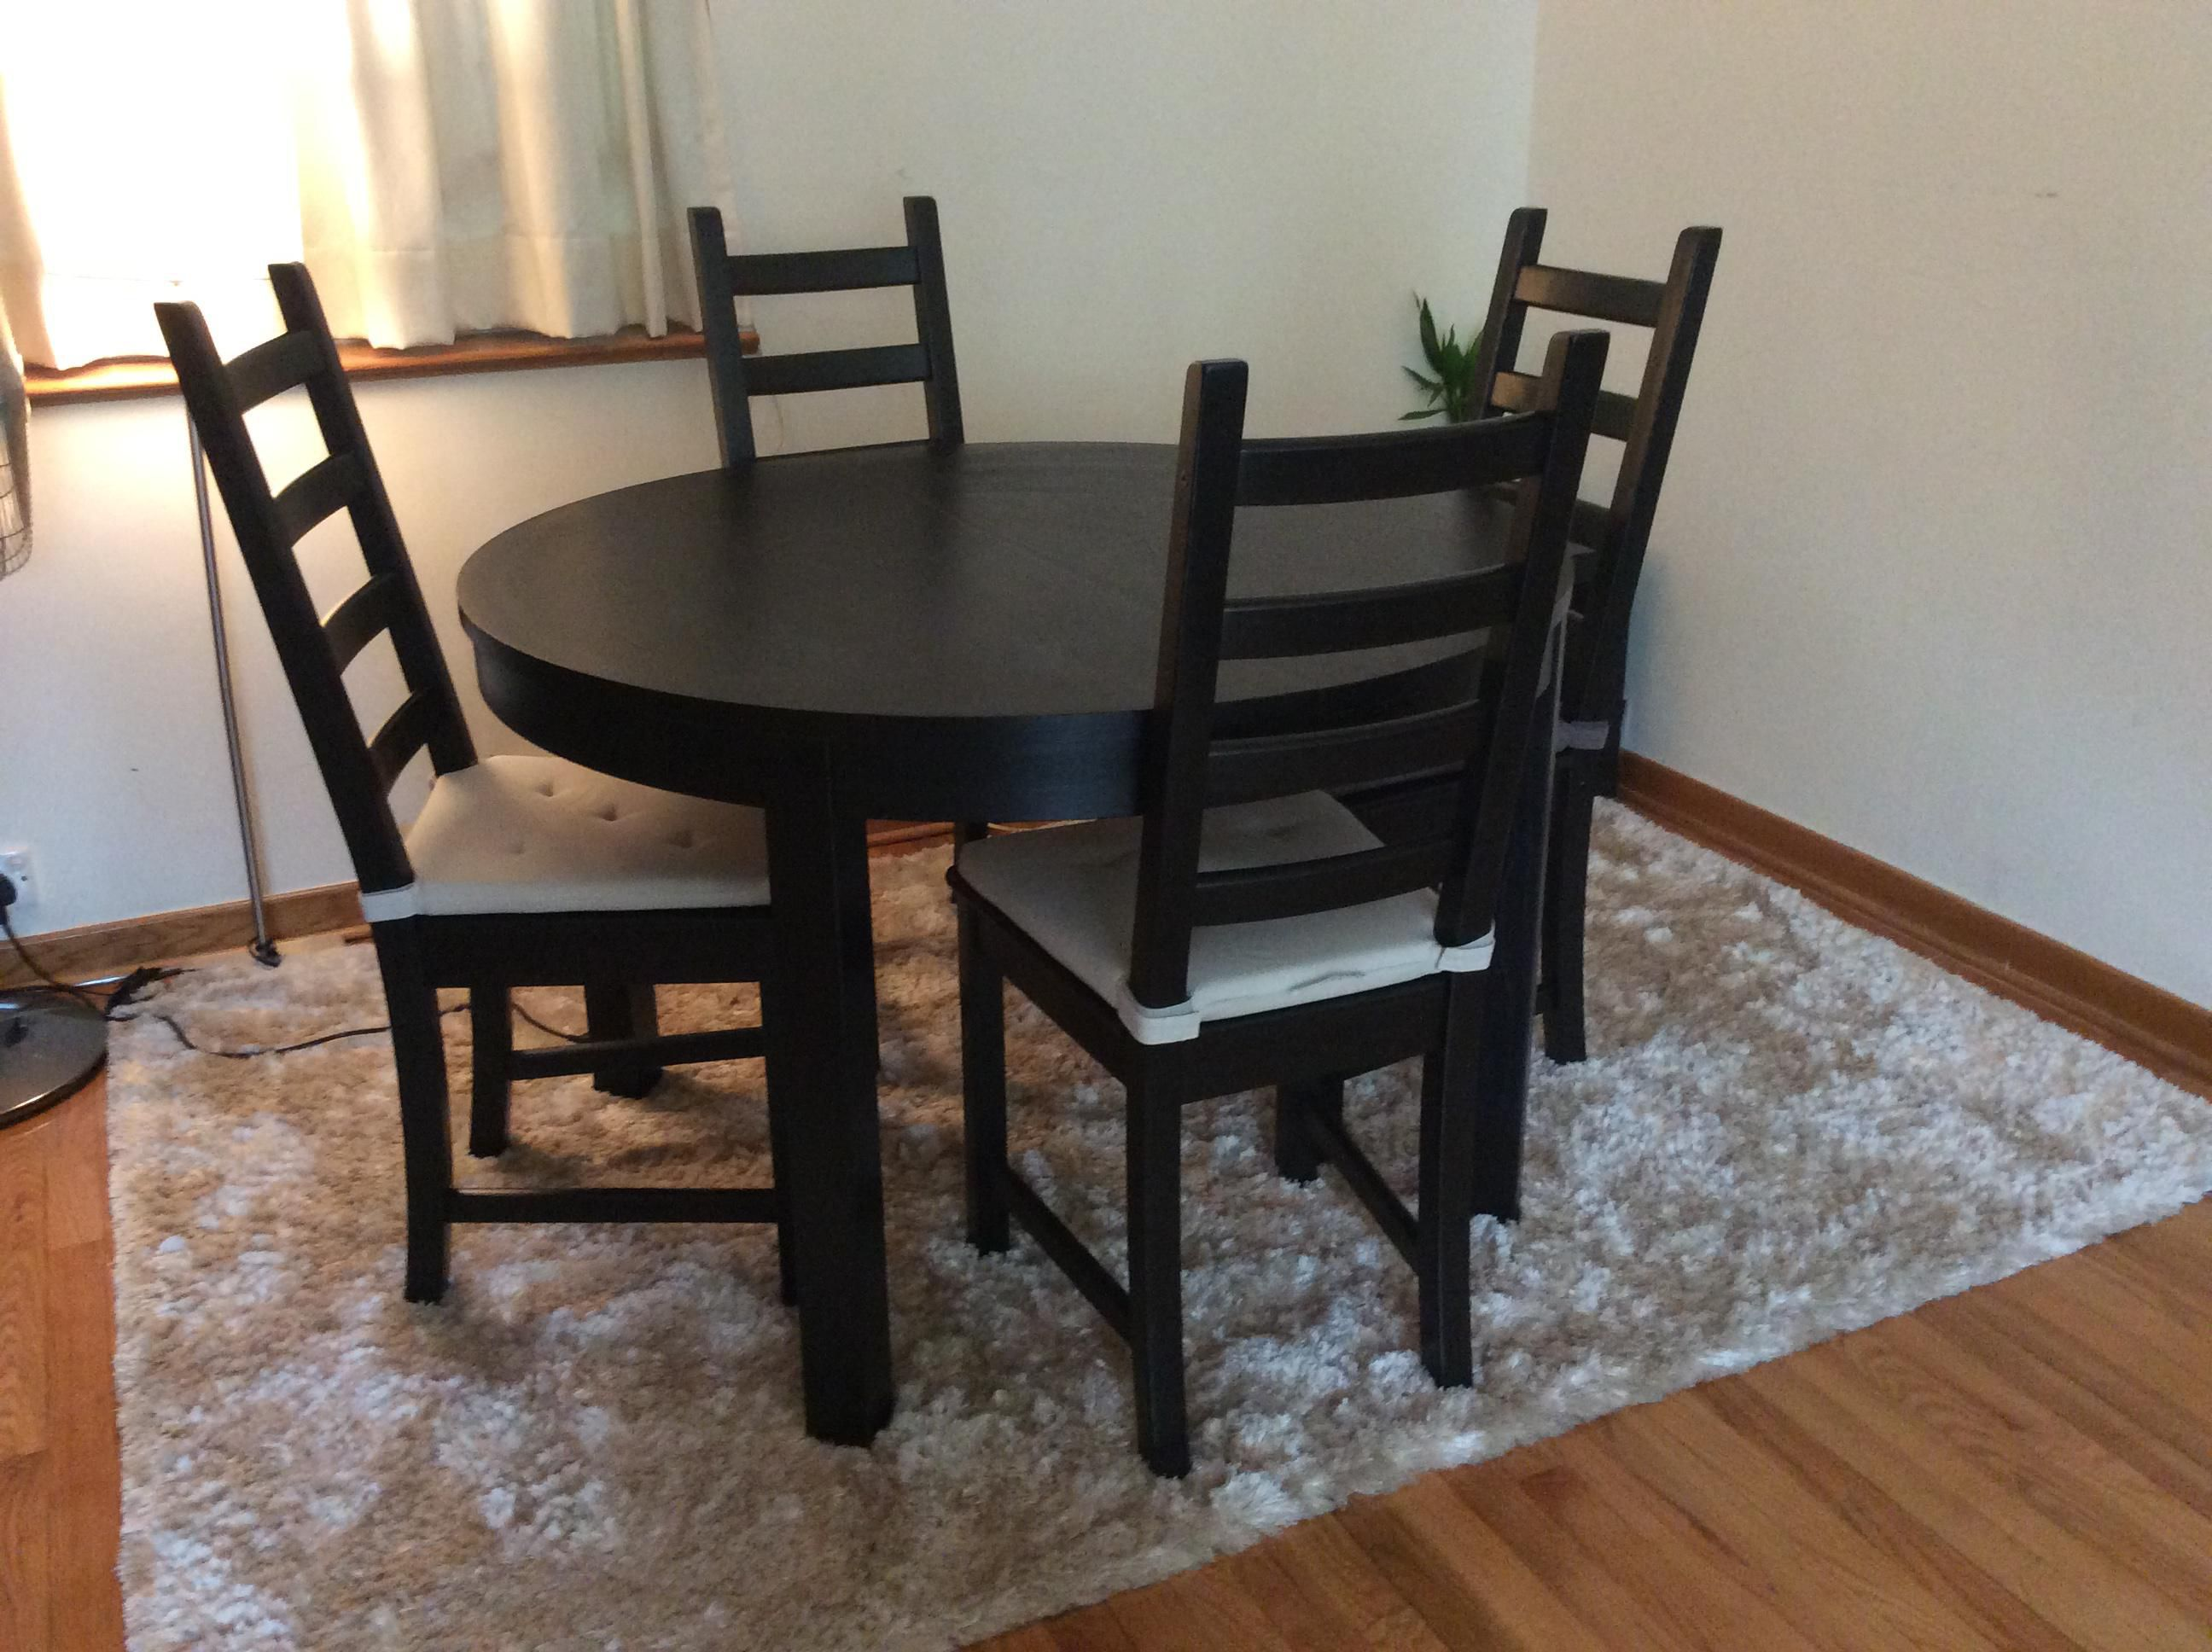 Ikea Bjursta Extendable Table And 4 Chairs Secondhand Hk